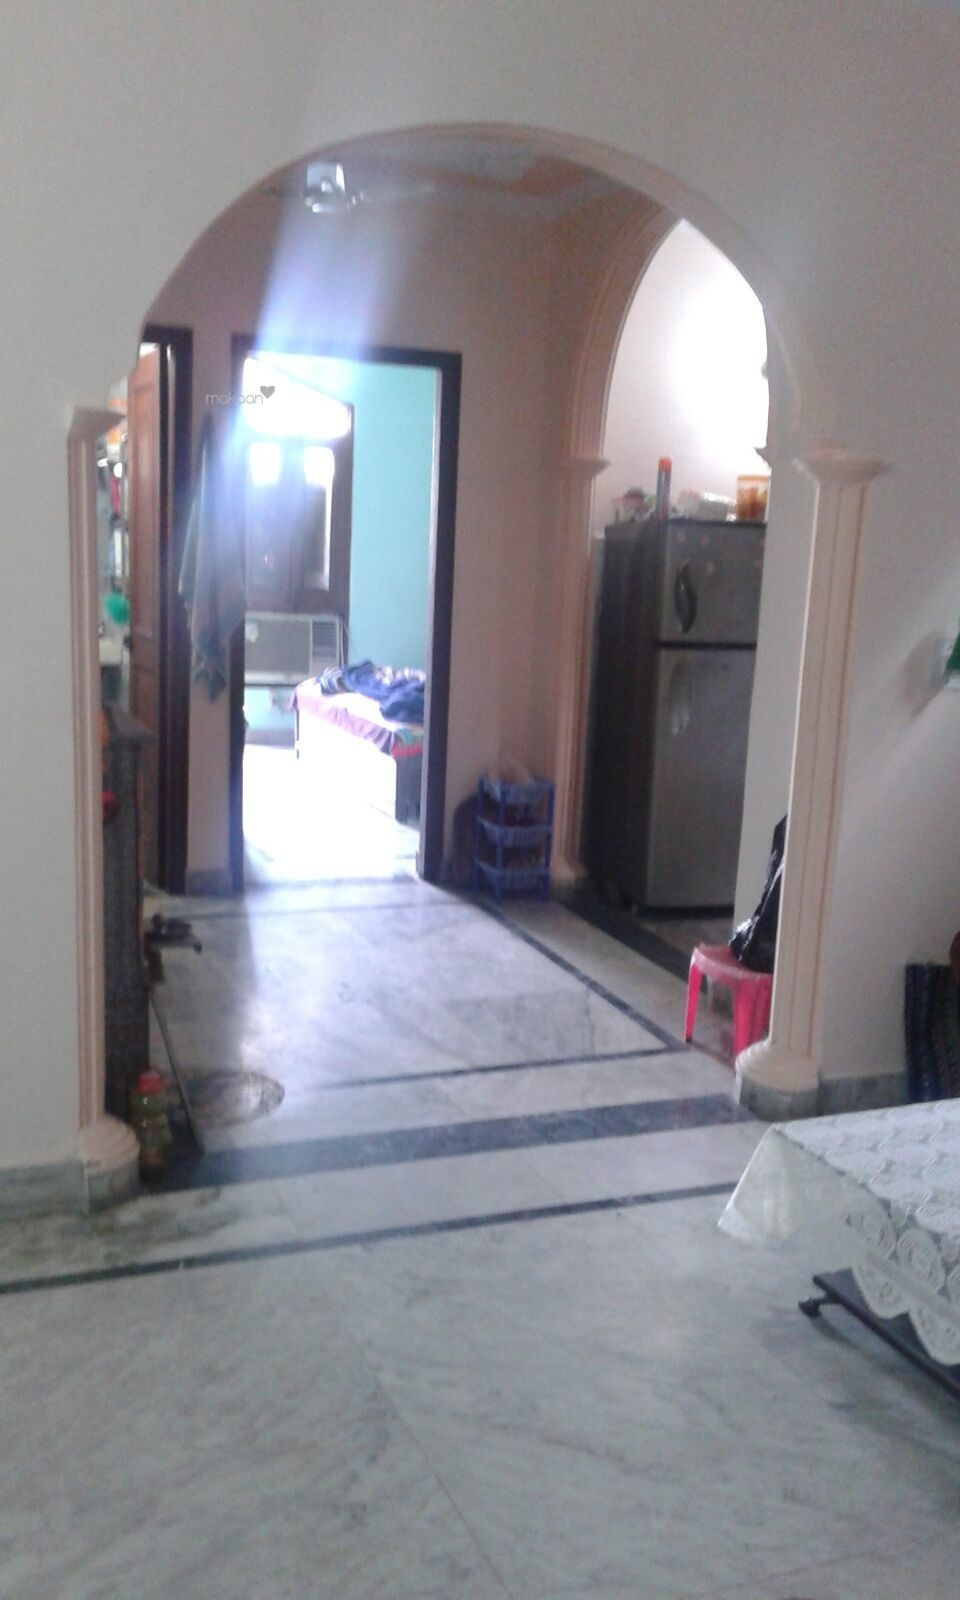 1230 sq ft 3BHK 3BHK+2T (1,230 sq ft) + Pooja Room Property By Demera Homz In Project, Niti Khand 1